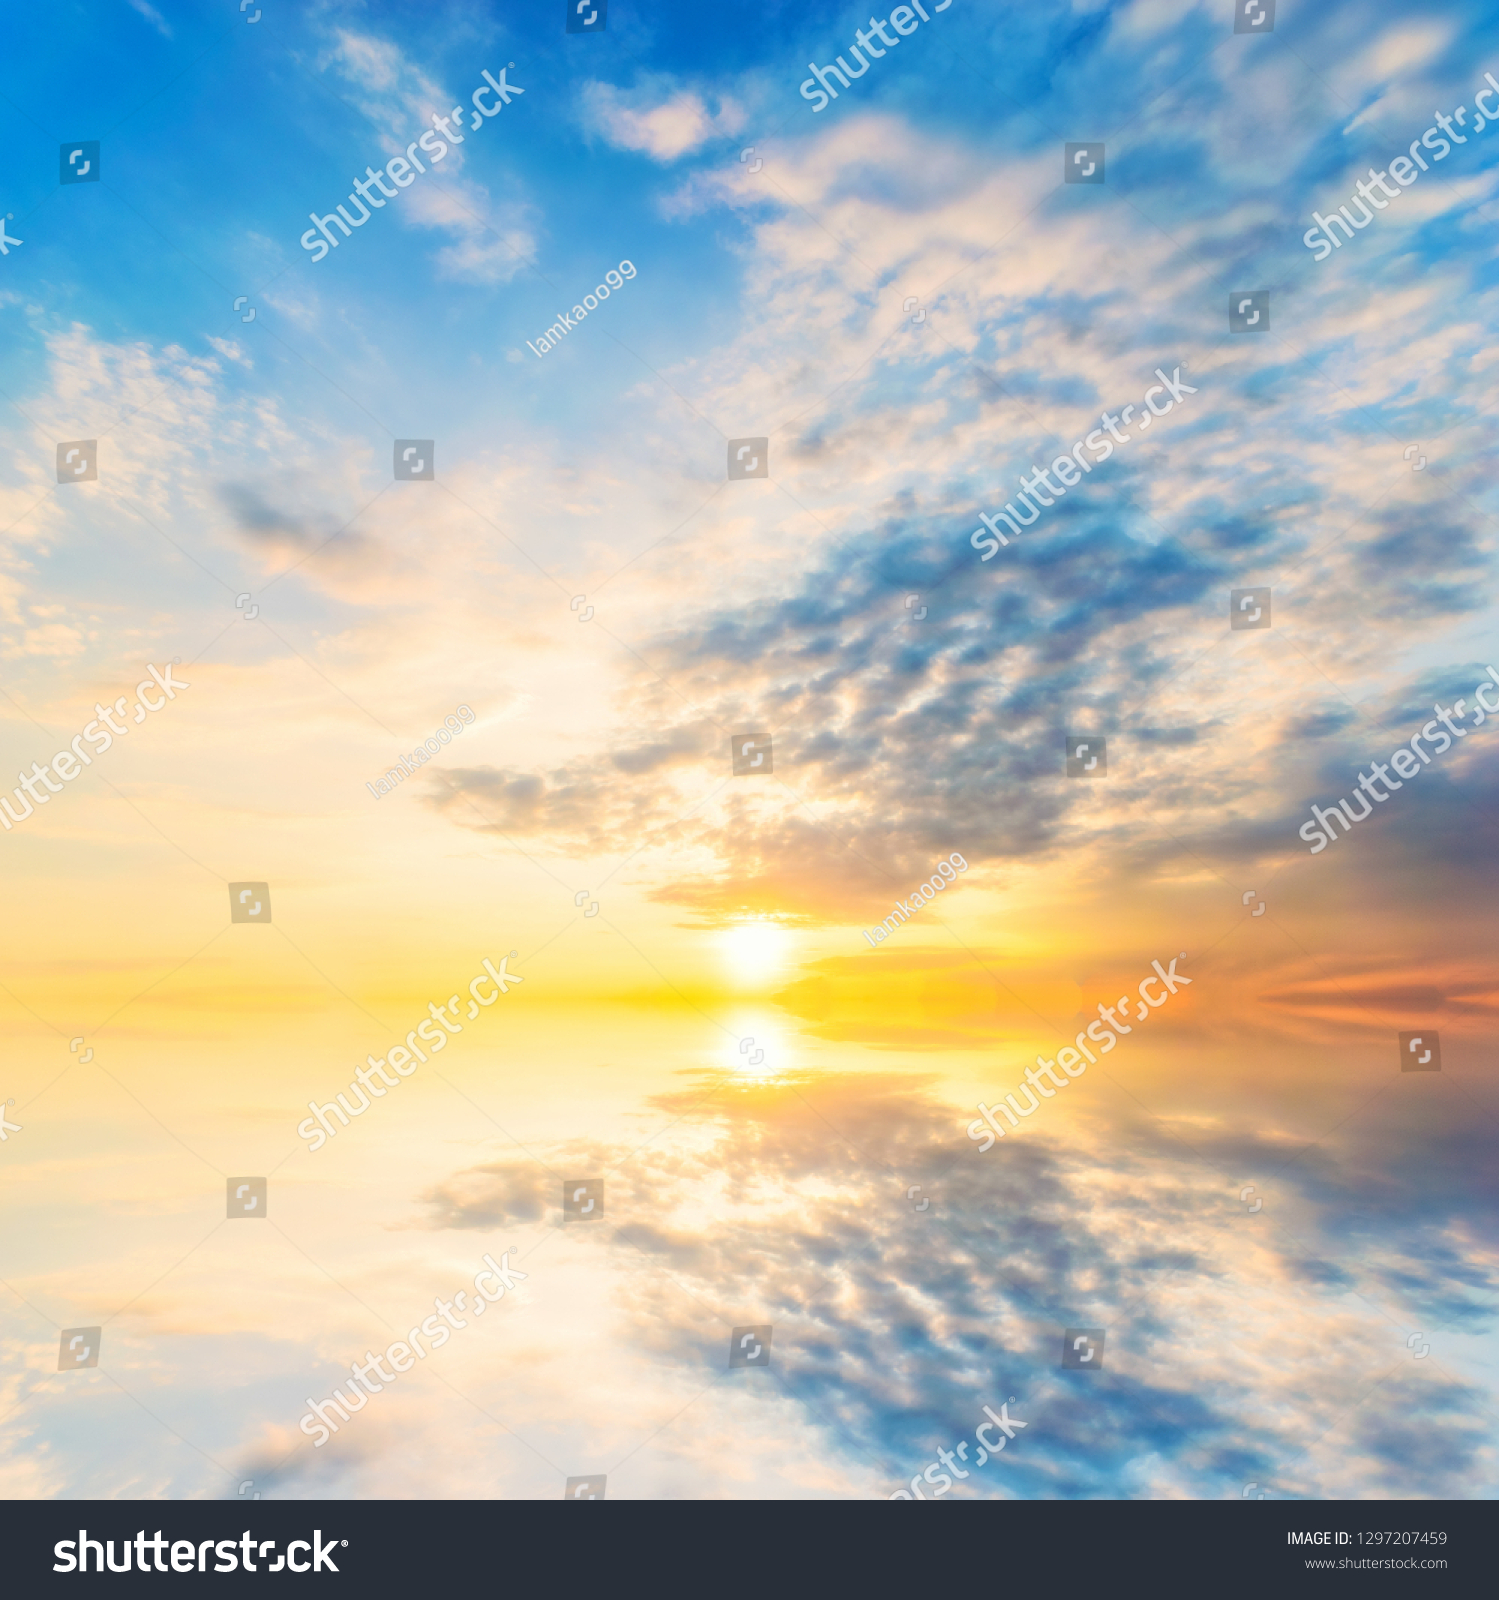 Background sky during sunset and water reflections. #1297207459